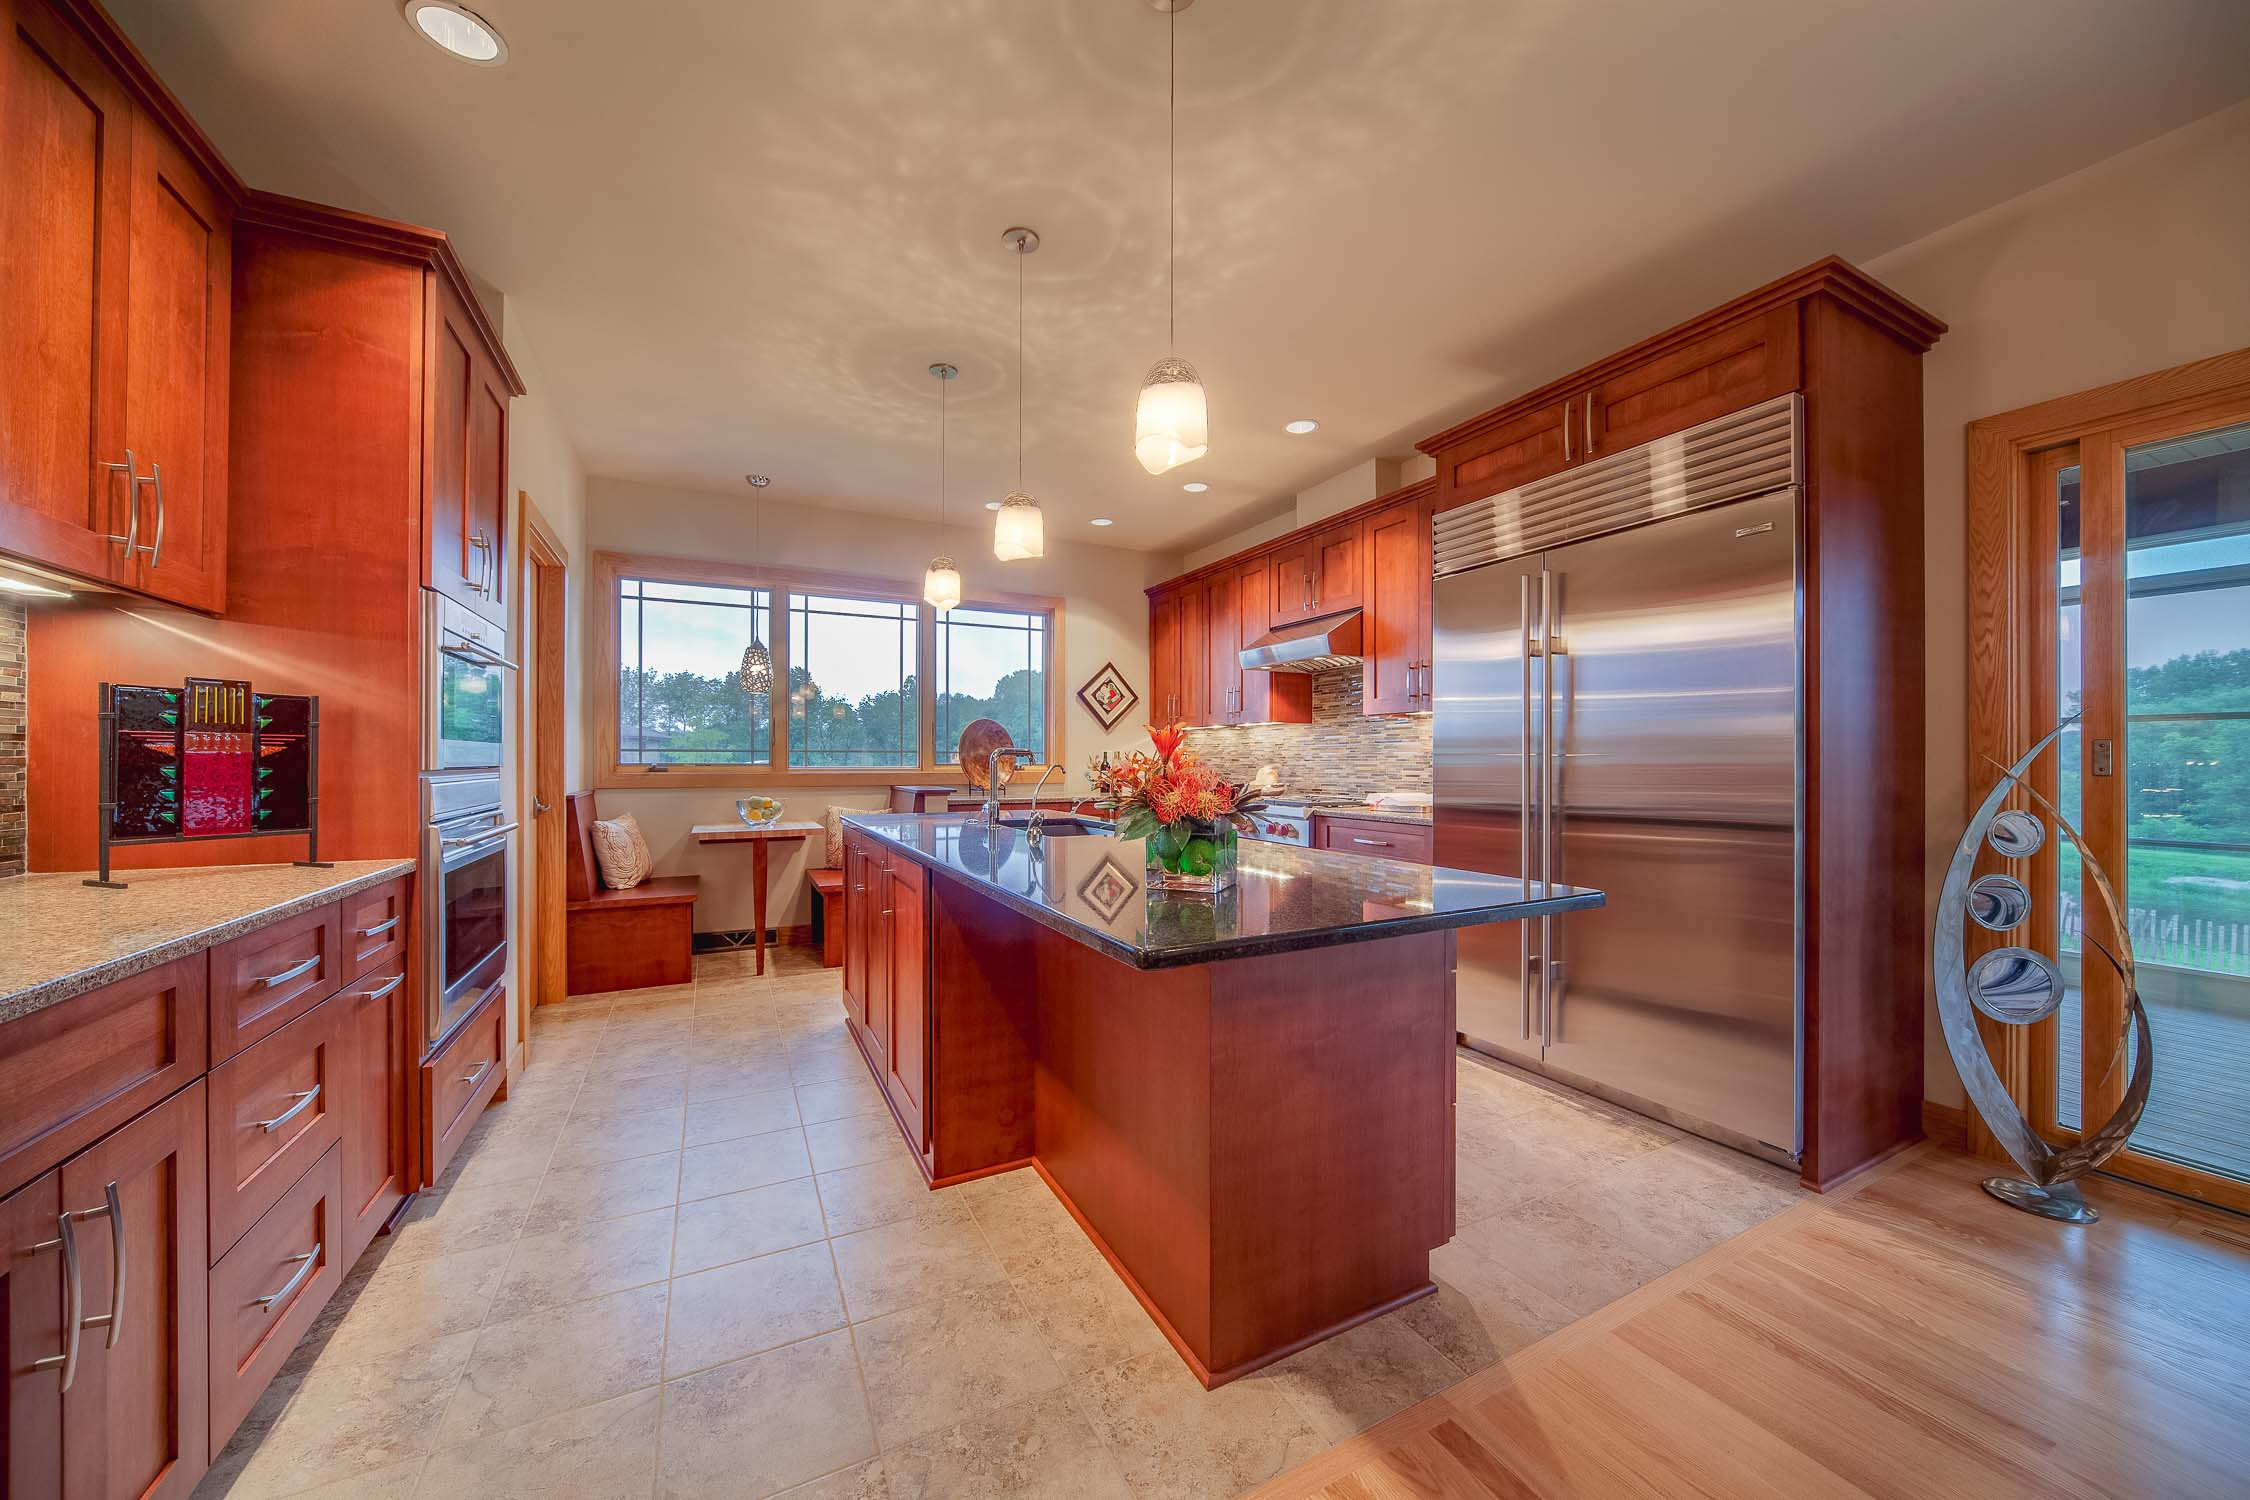 - This kitchen uses halogen lamps with Alzak reflective trims to disperse light throughout the kitchen. Pendants add a decorative shadow to the ceiling.